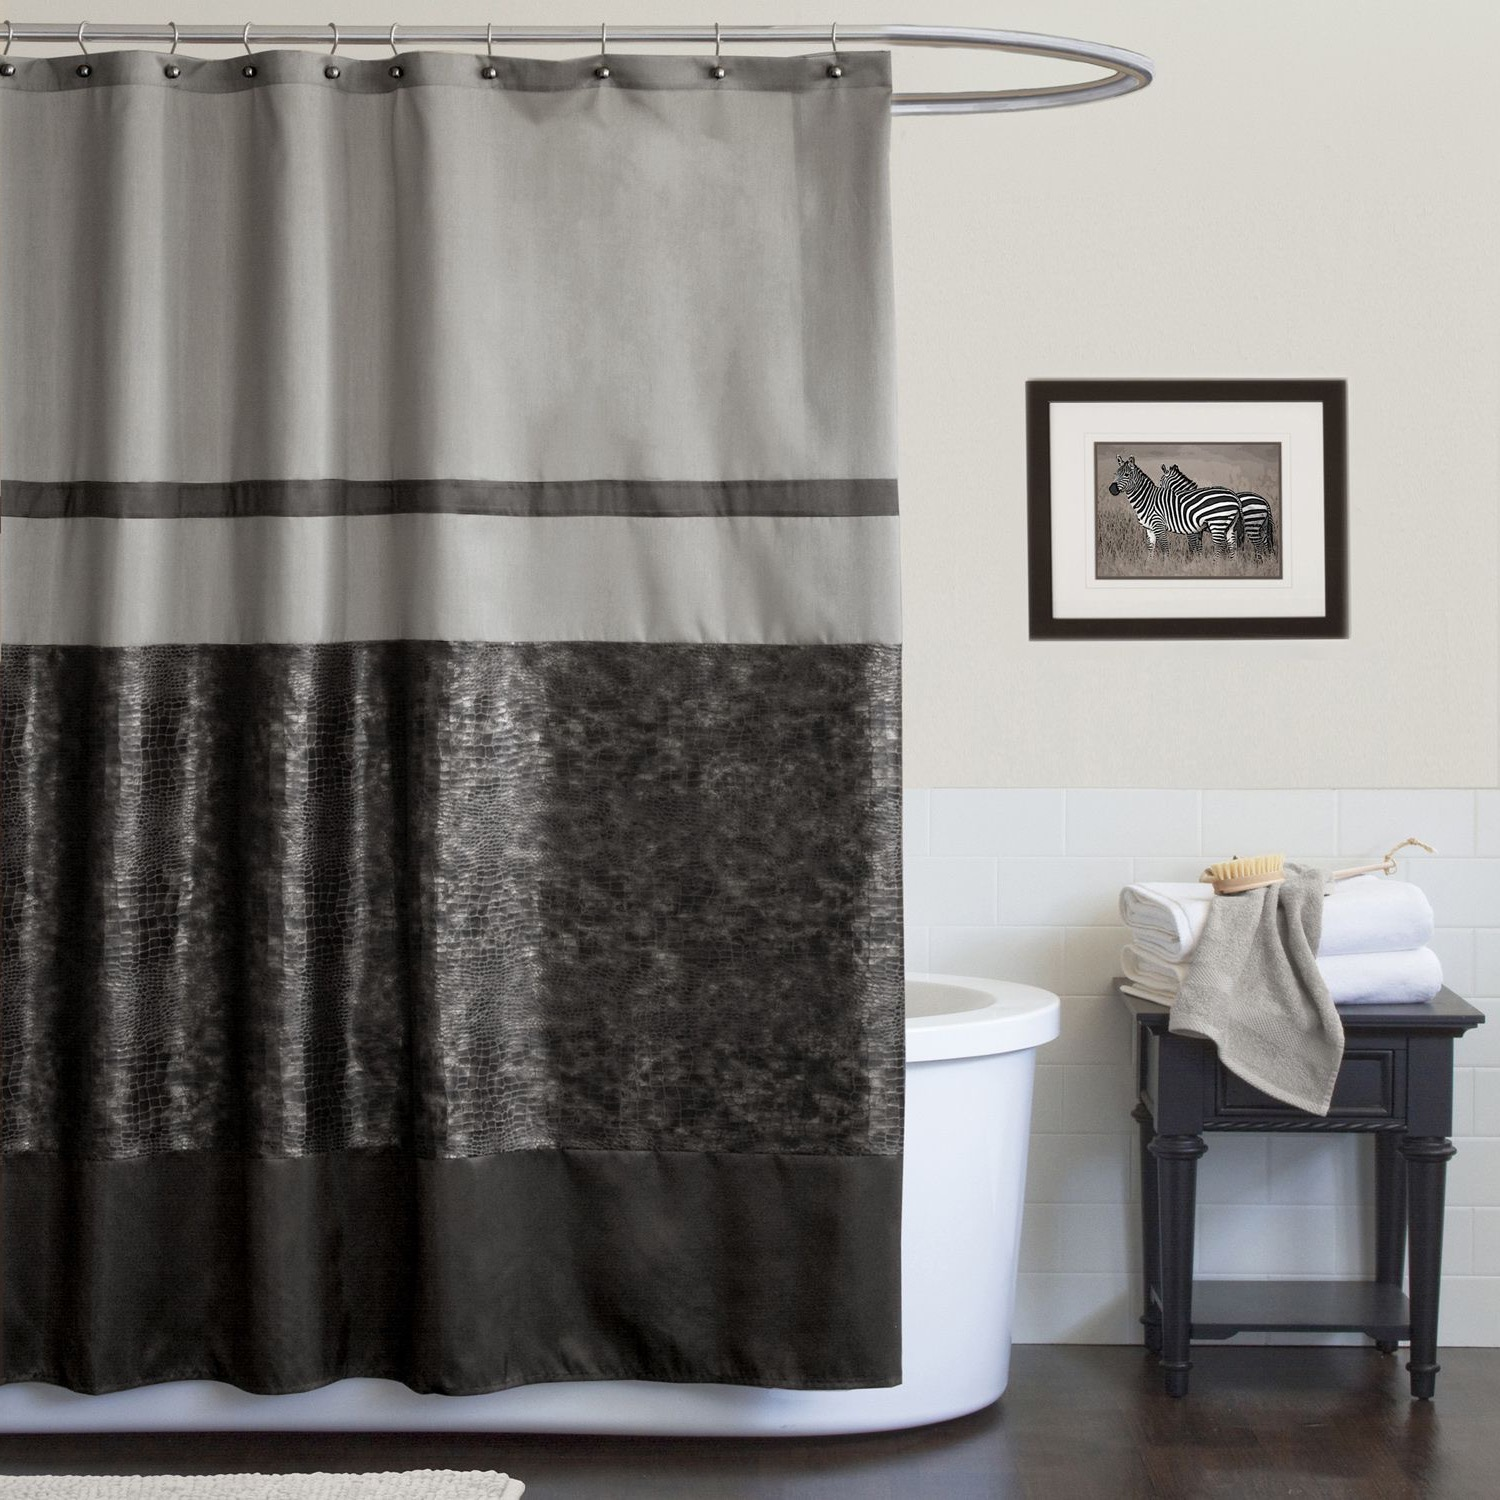 Modern Shower Curtain In Dark Color (Image 11 of 15)